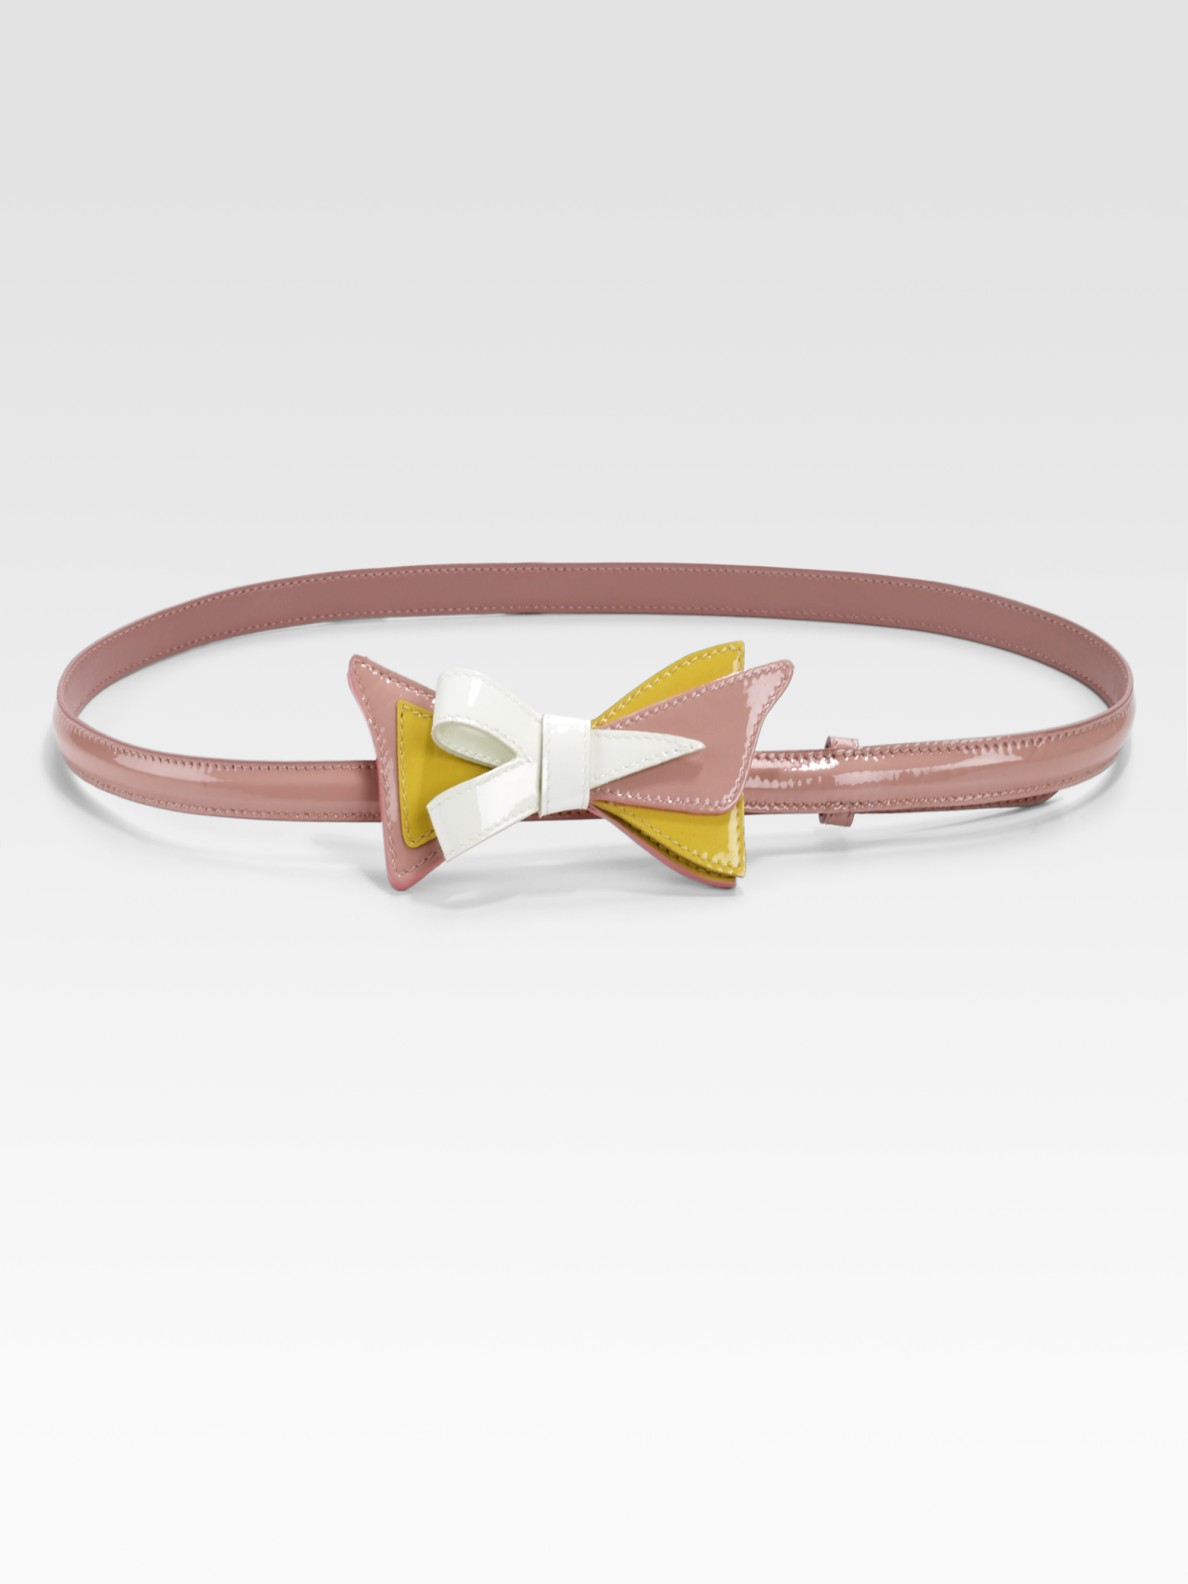 Prada Tri-colored Patent Leather Bow Belt in Blue (orchidea) | Lyst